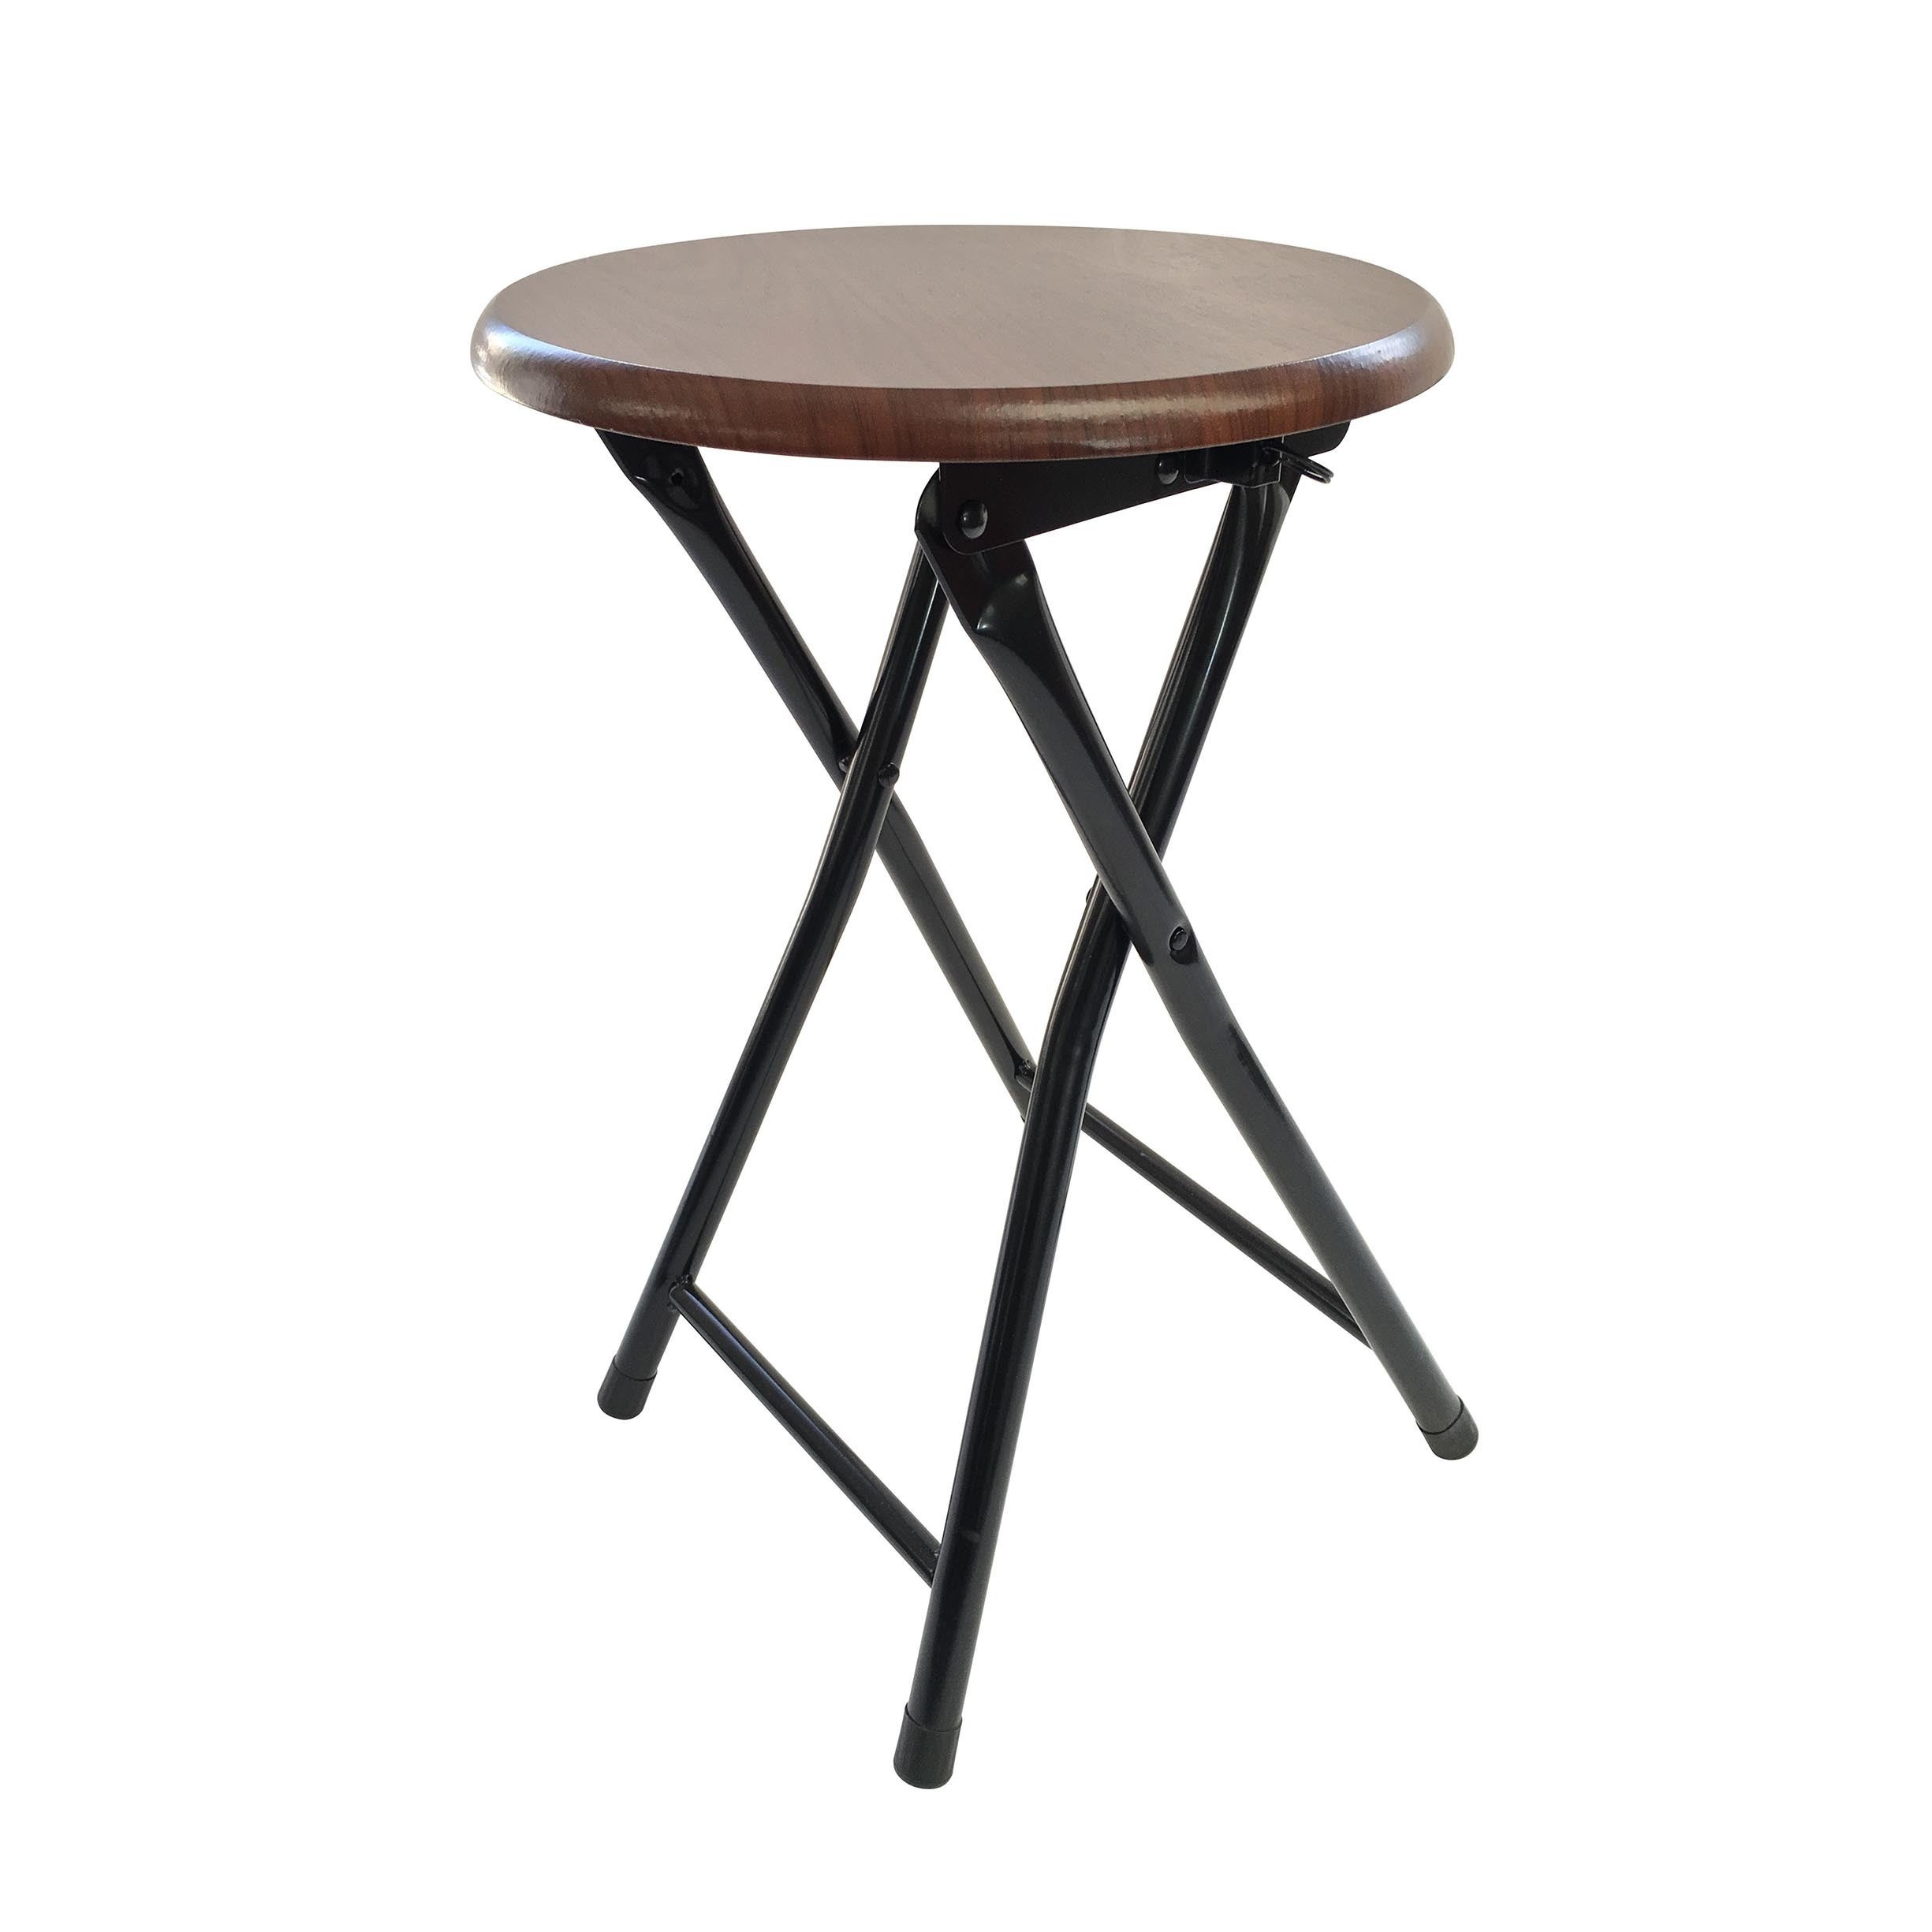 Wee's Beyond Brown Wood and Metal Folding Stool (Cherry)